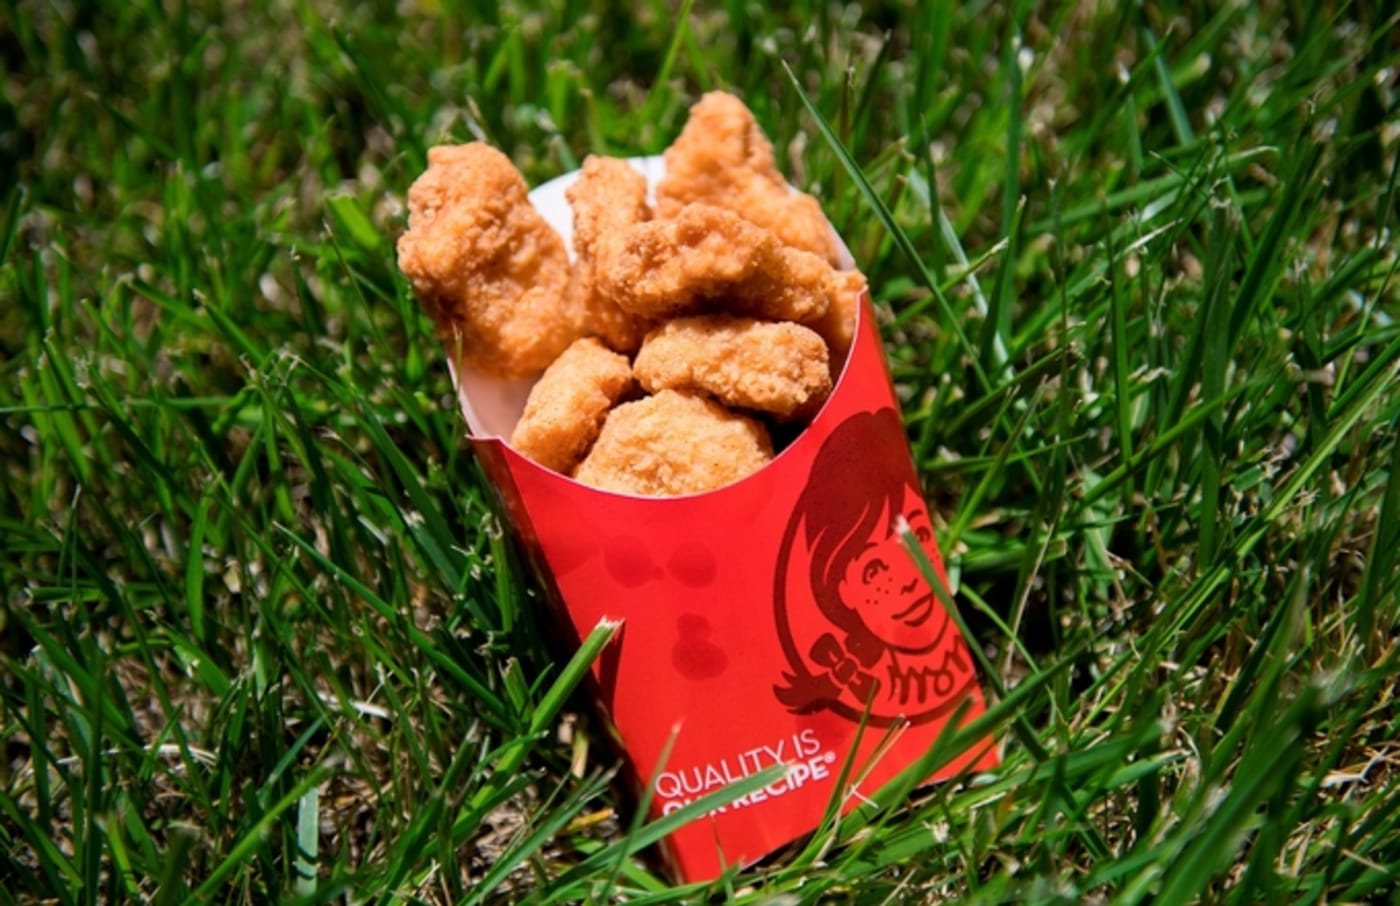 wendys spicy nuggets